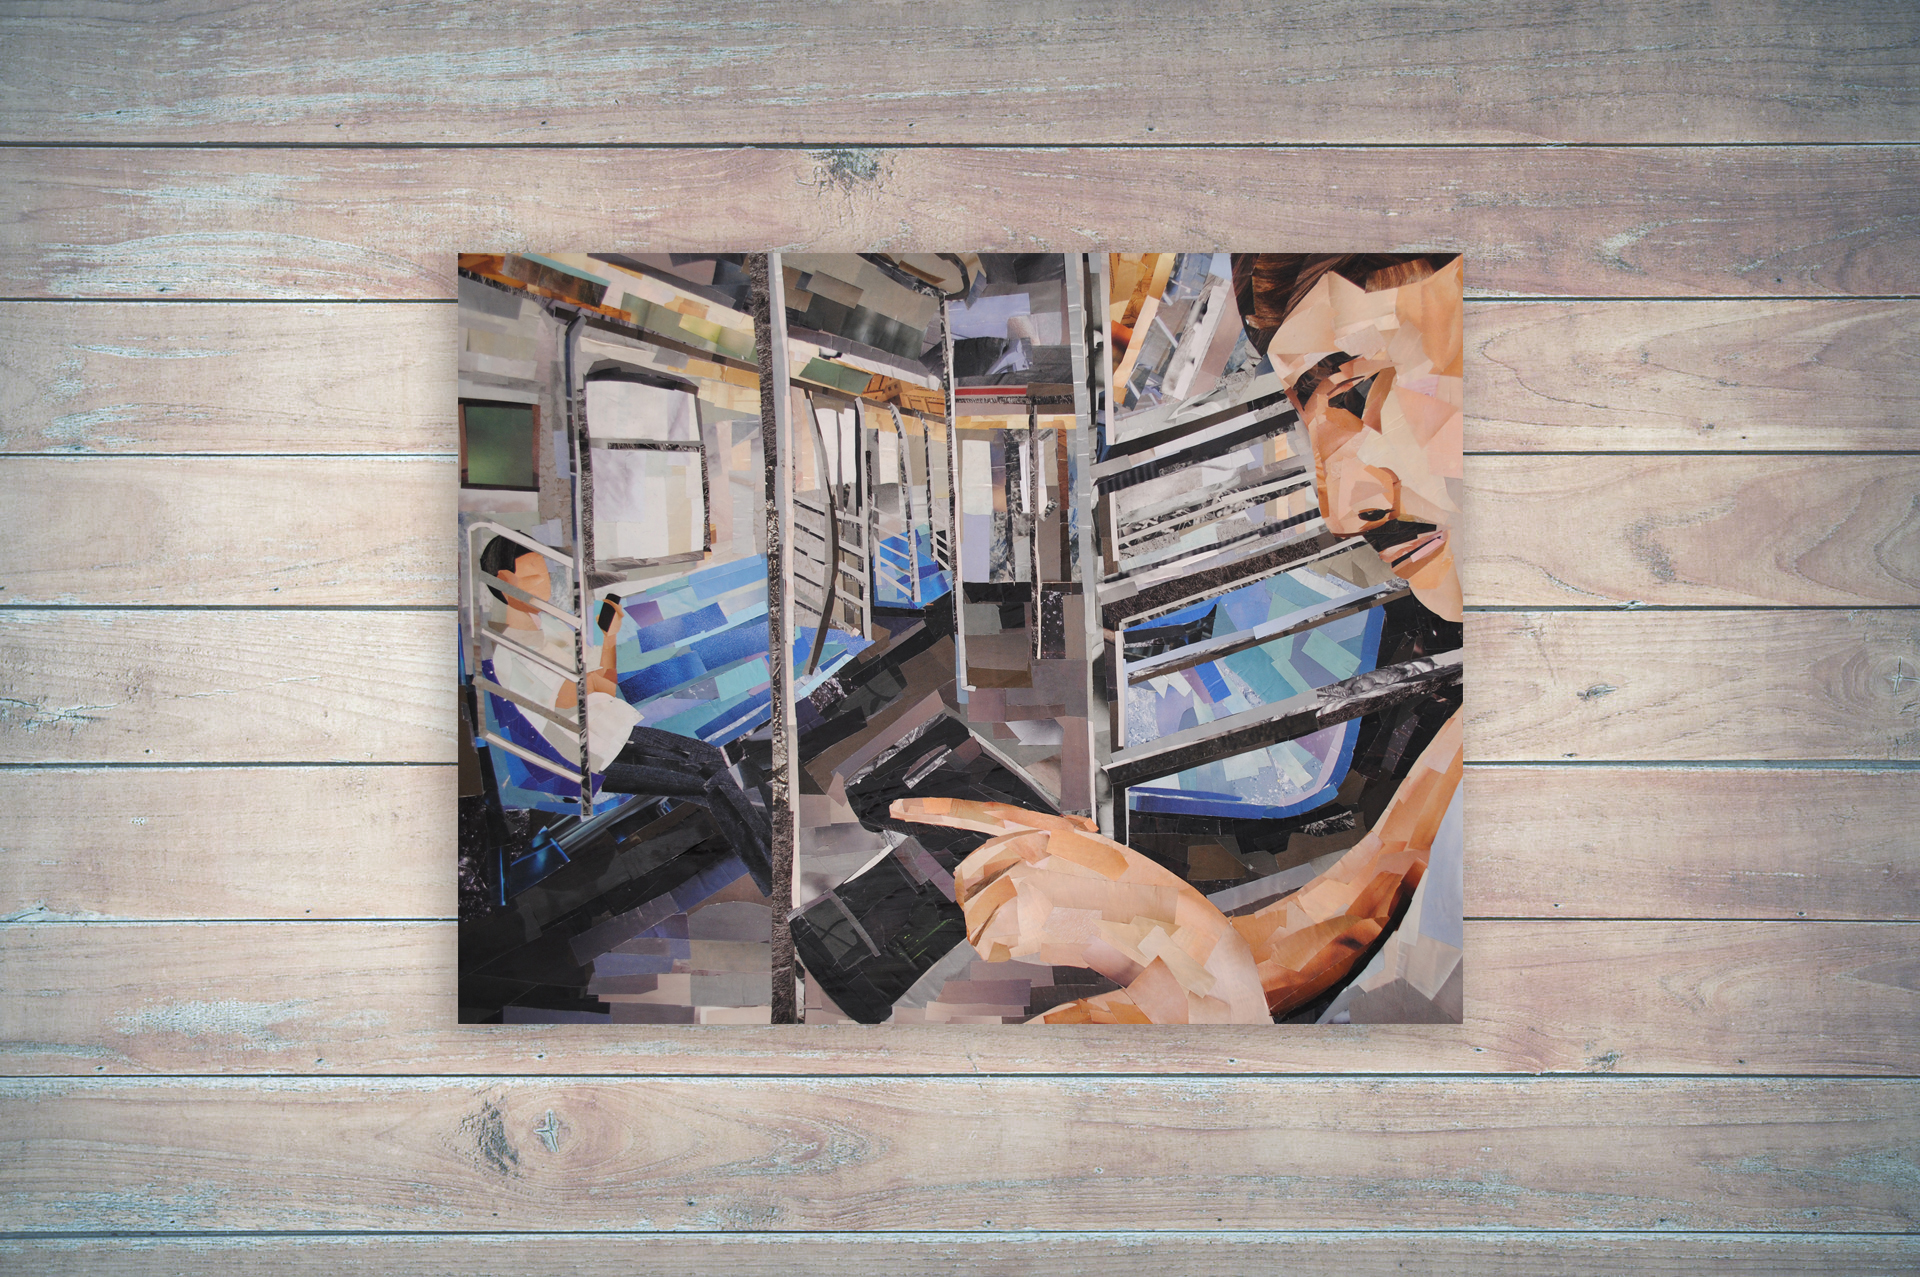 Commuters is a collage by Megan Coyle